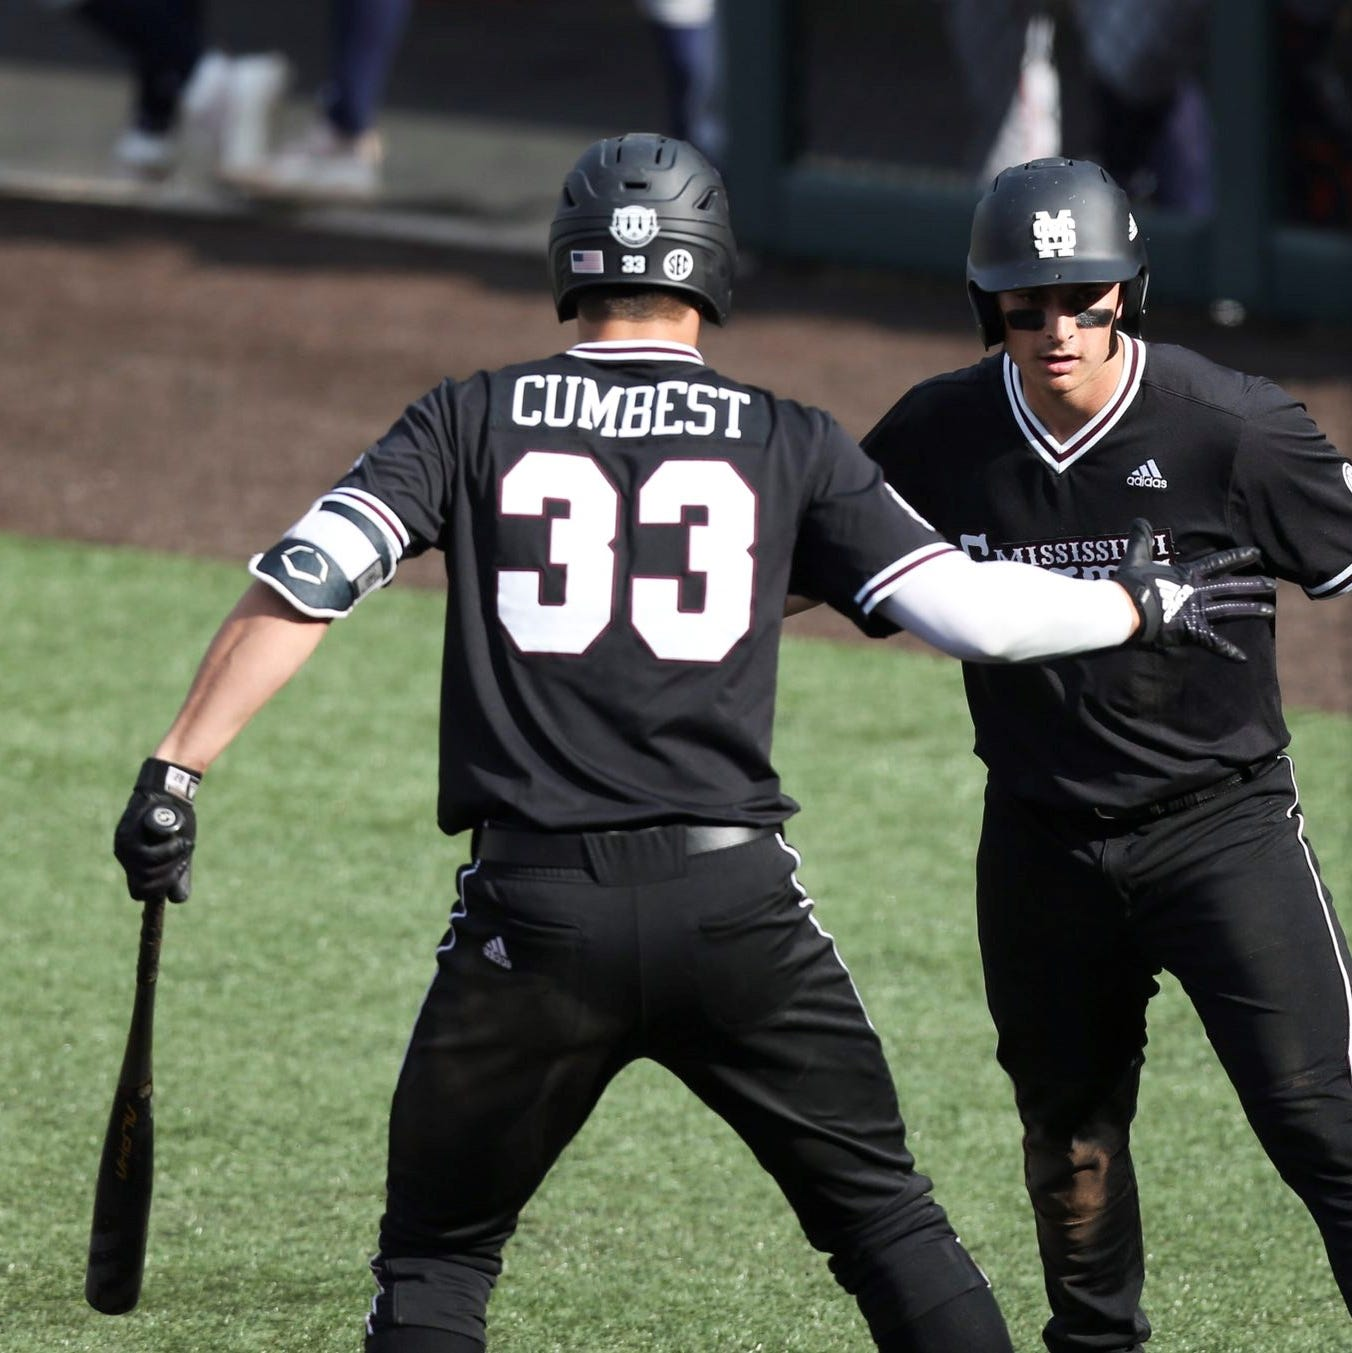 Bulldog bats come to life in Mississippi State's Sunday win over Tennessee